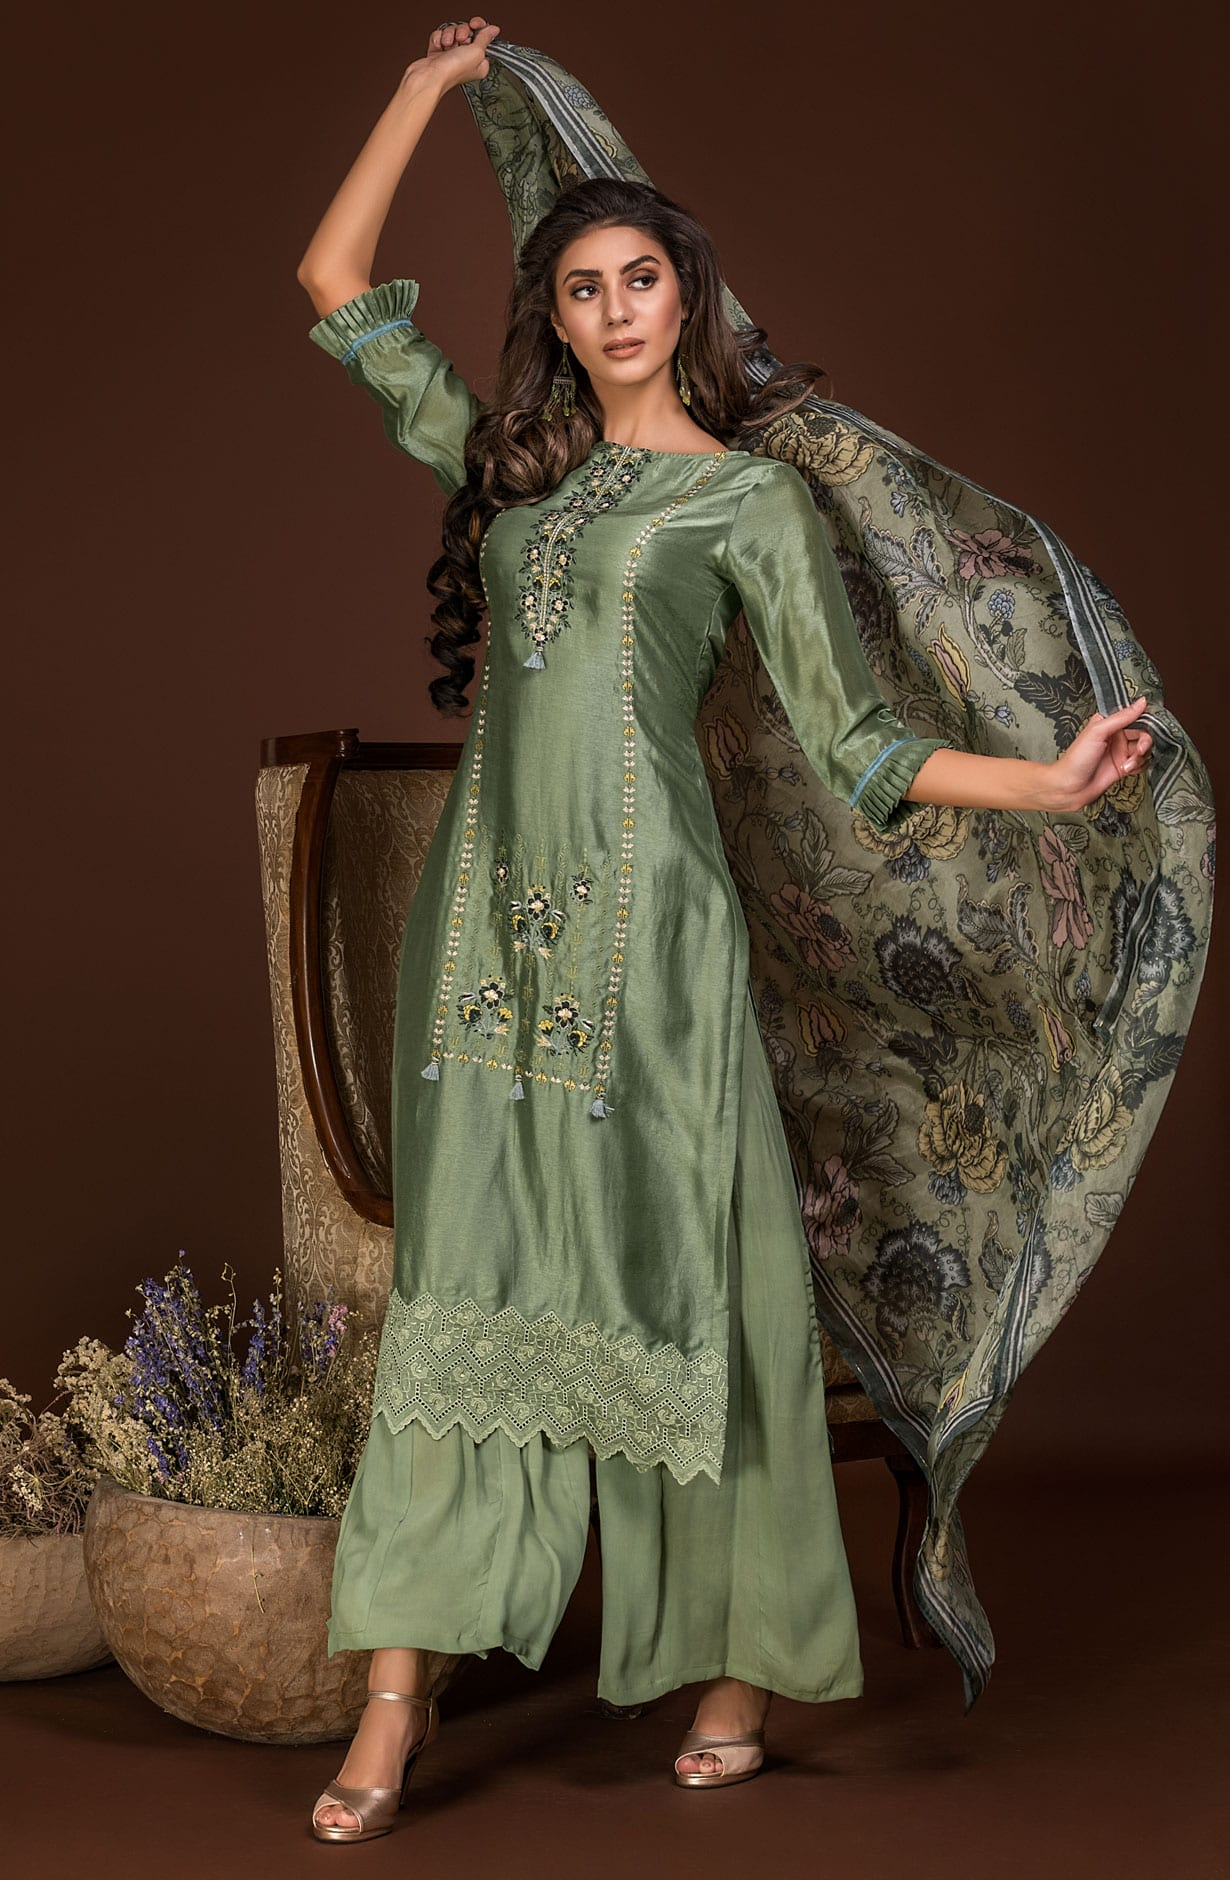 d5ea04e105 Exclusive Designer Satin Silk and Crepe Green Salwar Suit Sets with  Embroidery & Zari Work | AMO2432